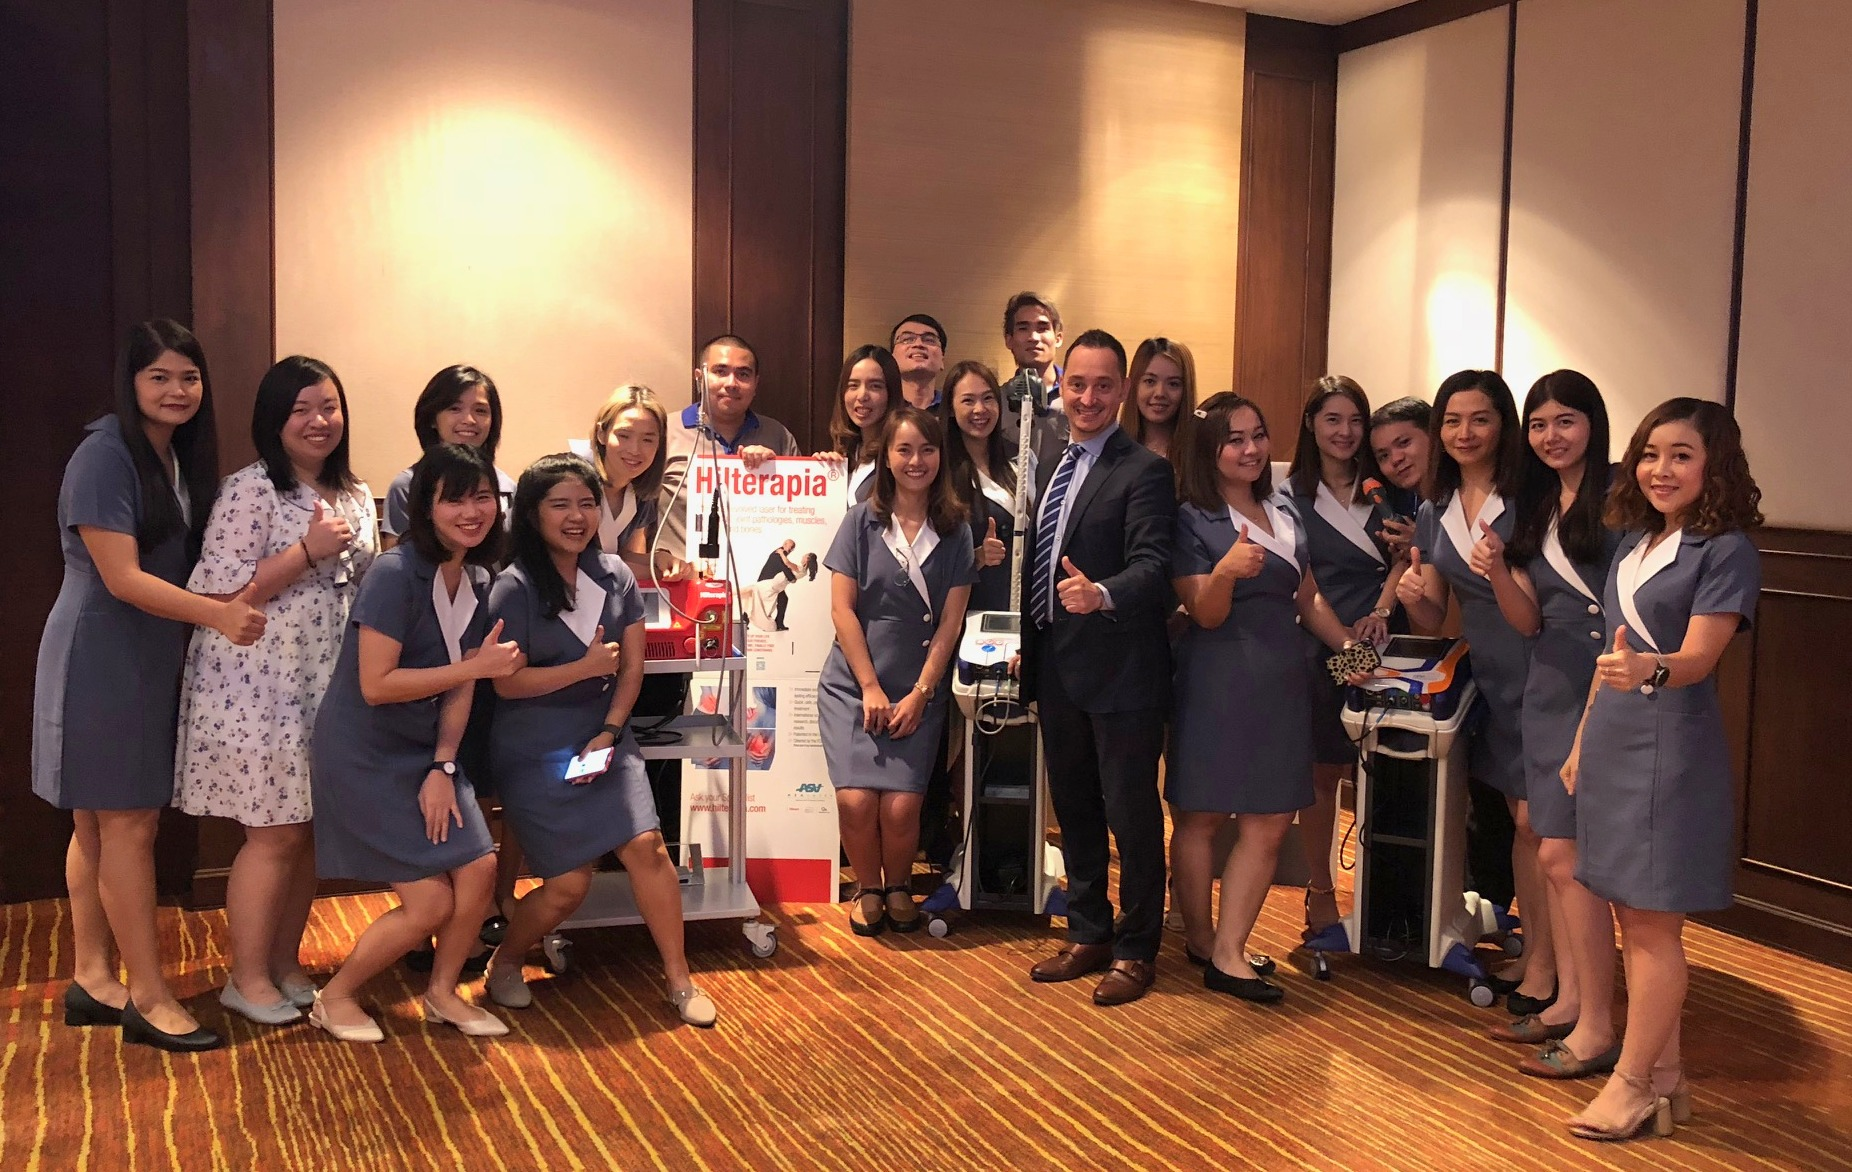 Todorov laser speech at Bumrungrad Hospital - Thailand 2019